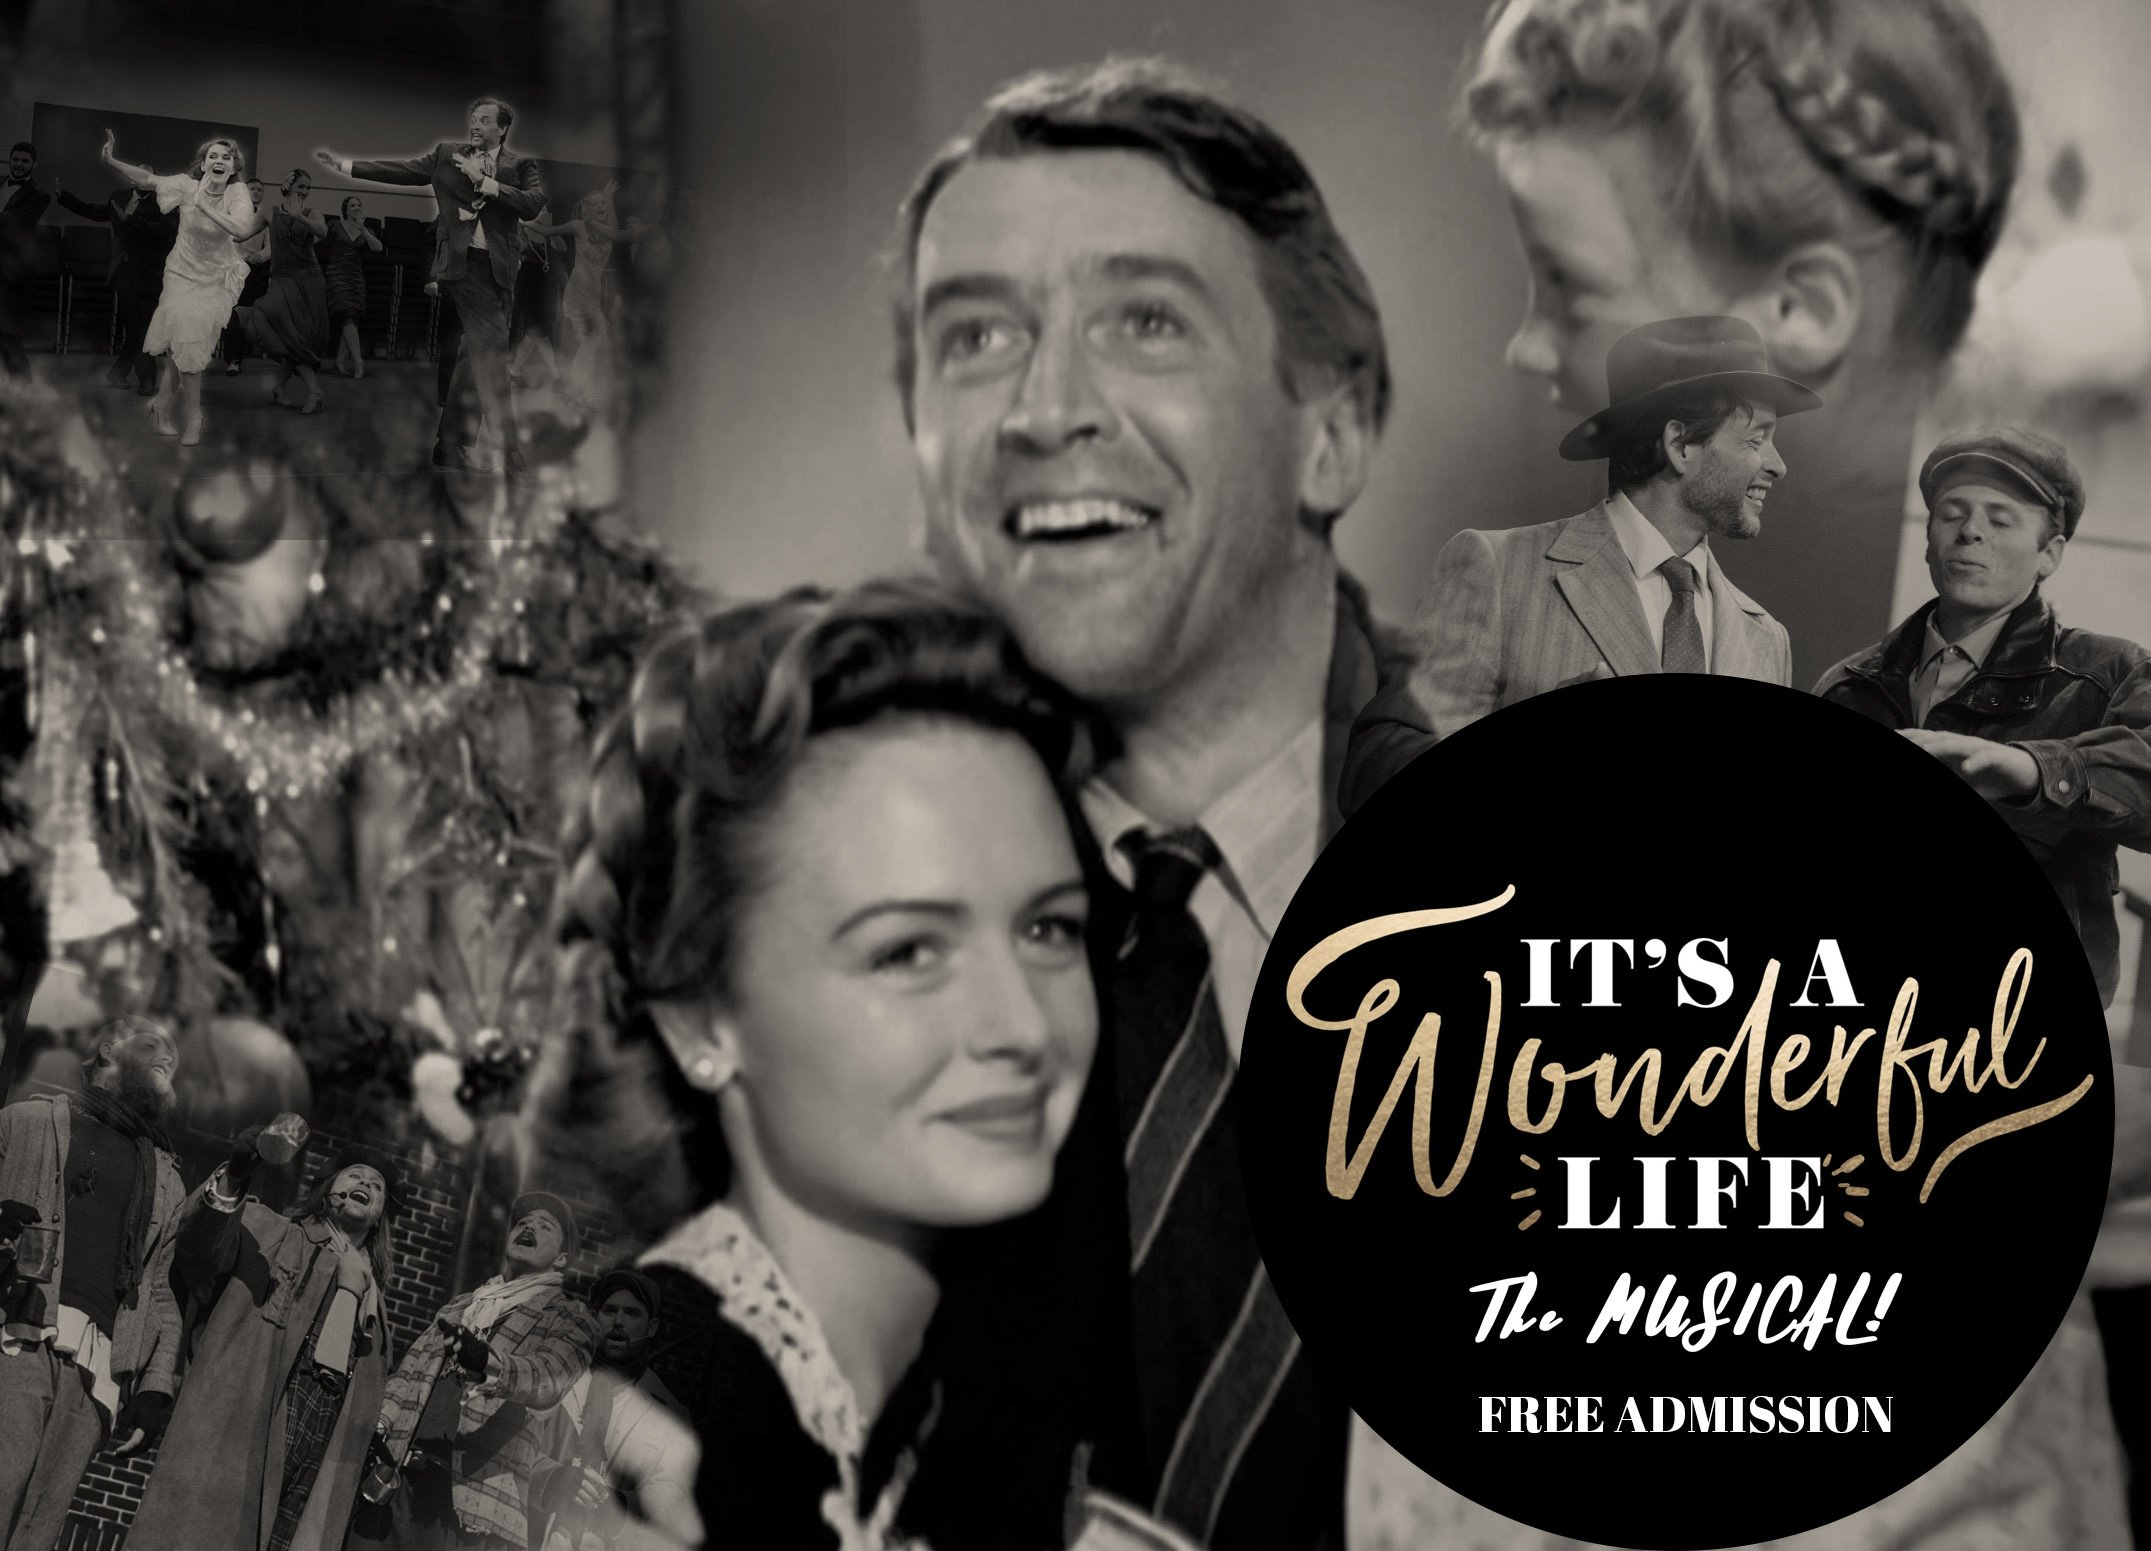 It 39 S A Wonderful Life The Musical Sunday December 17 2017 9 A M To 10 45 A M San Diego